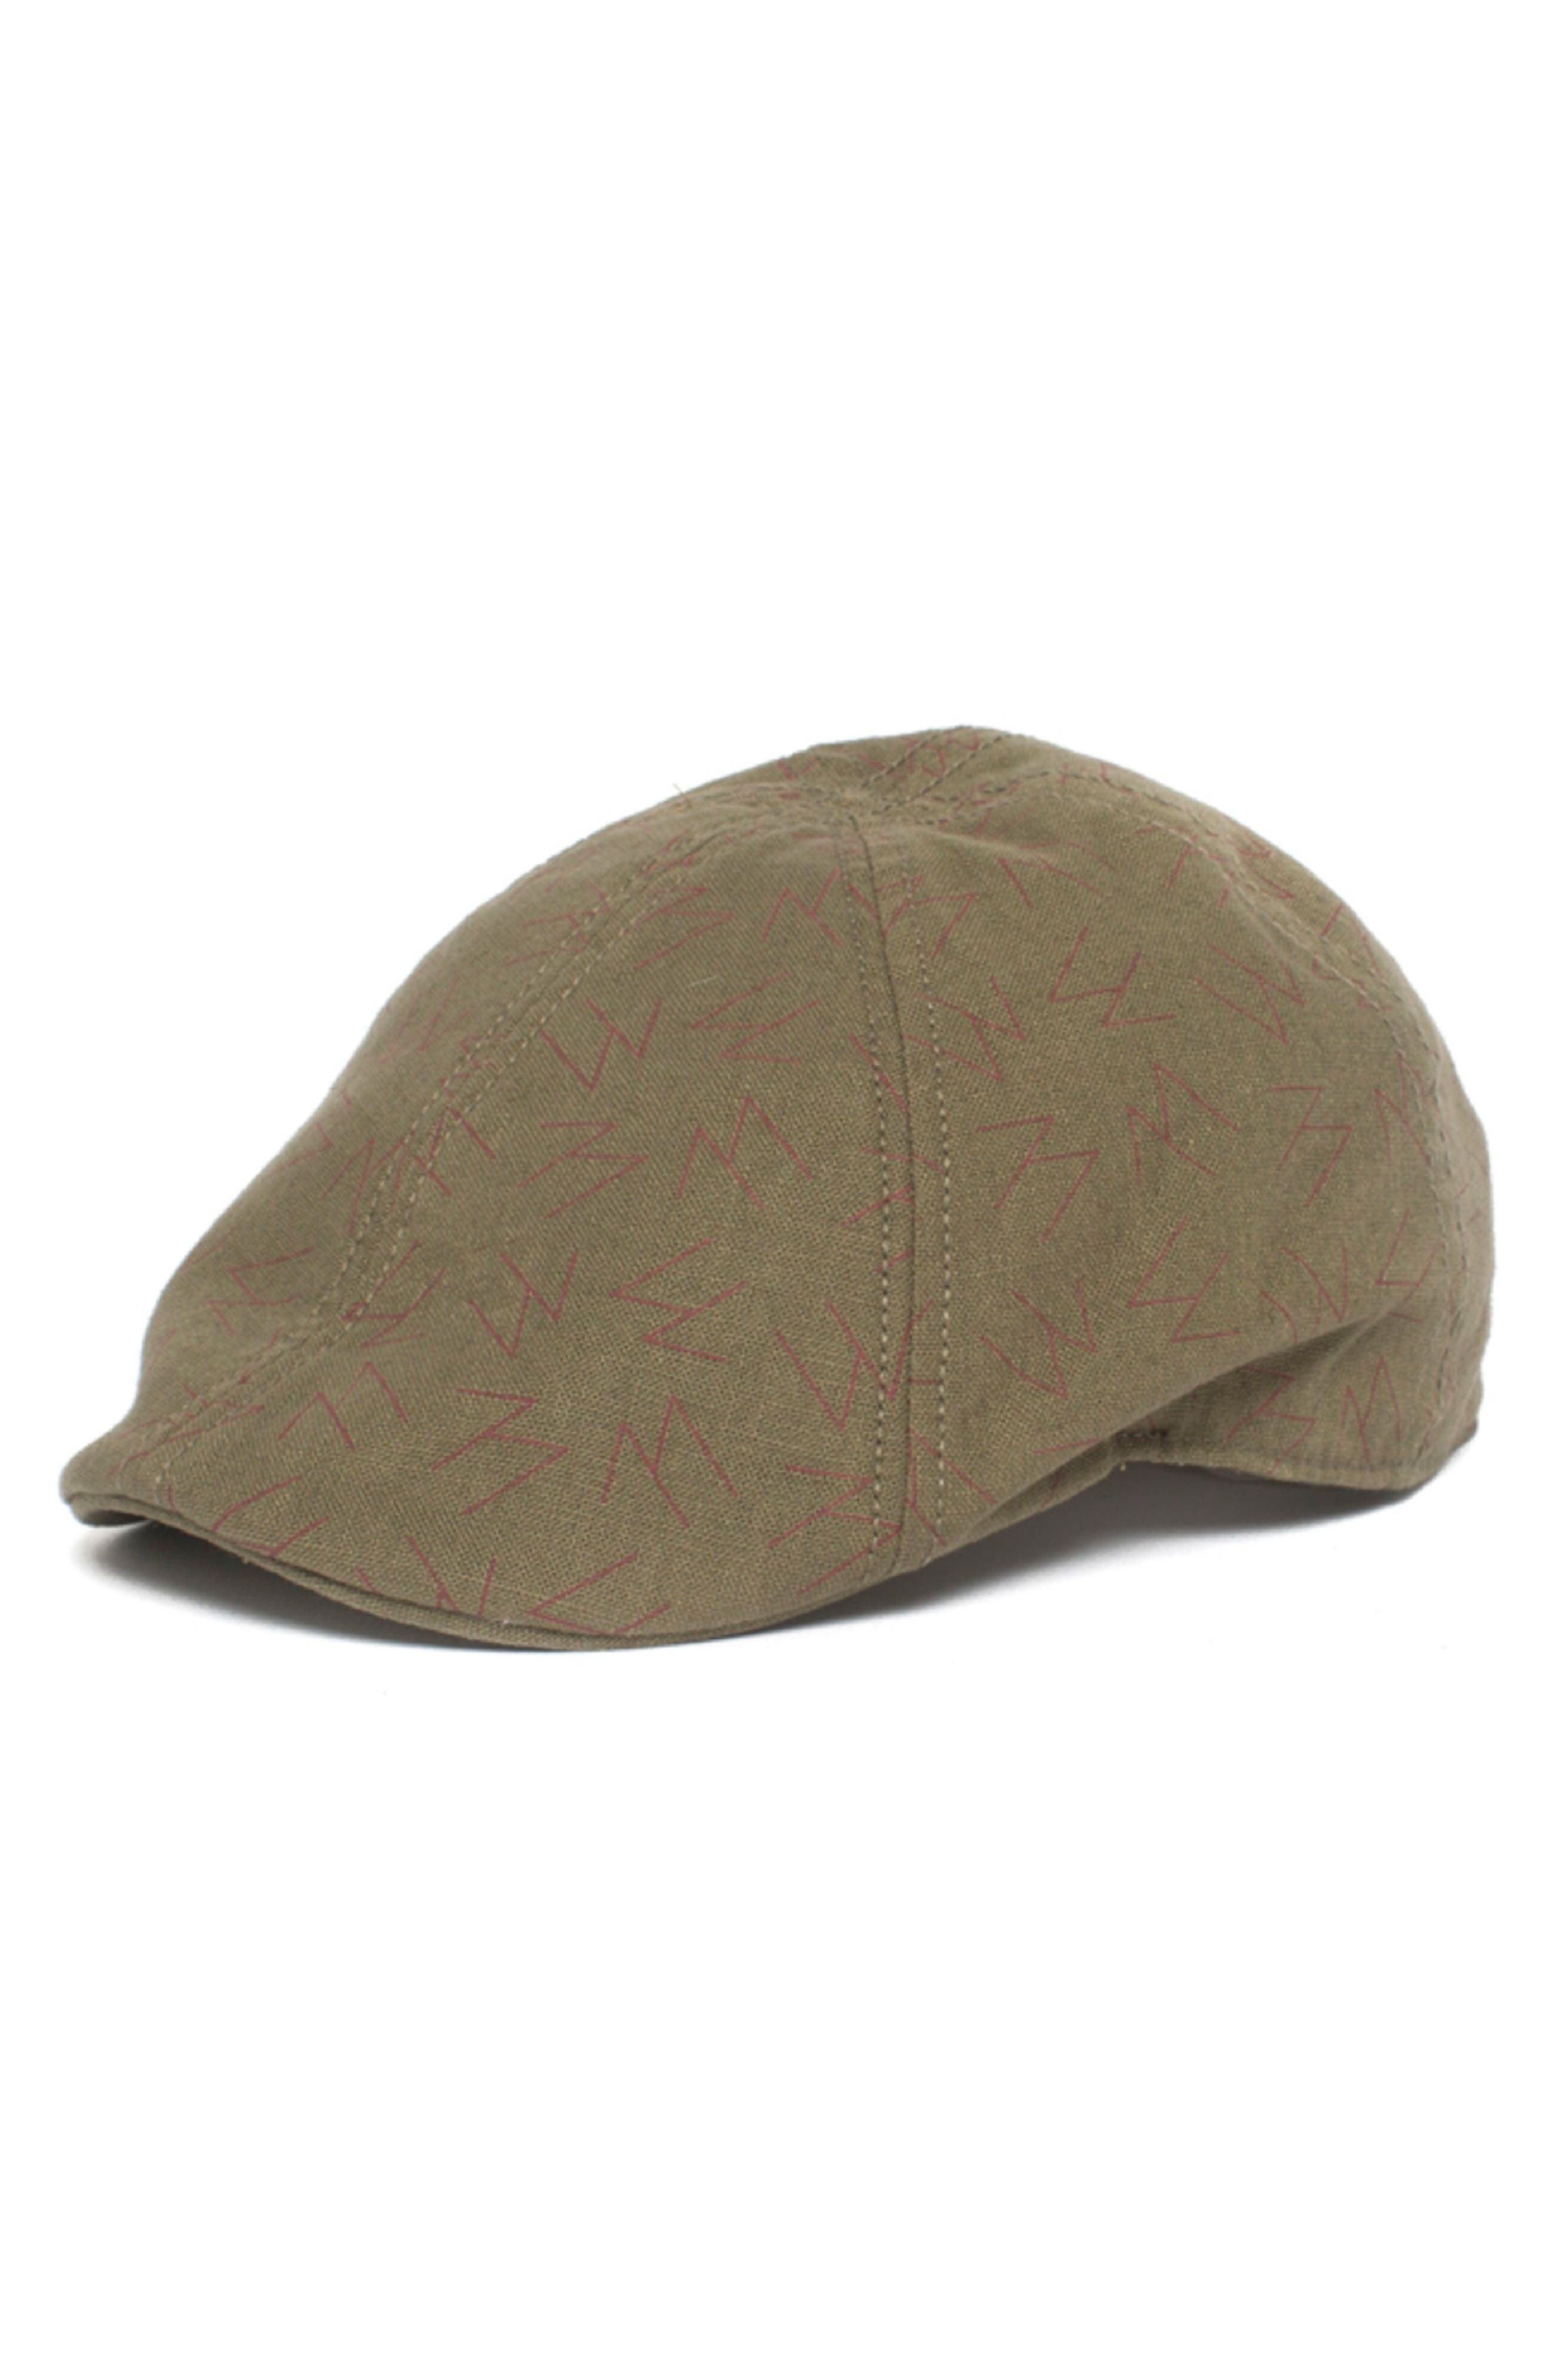 Goorin Brothers High Warrior Driving Cap